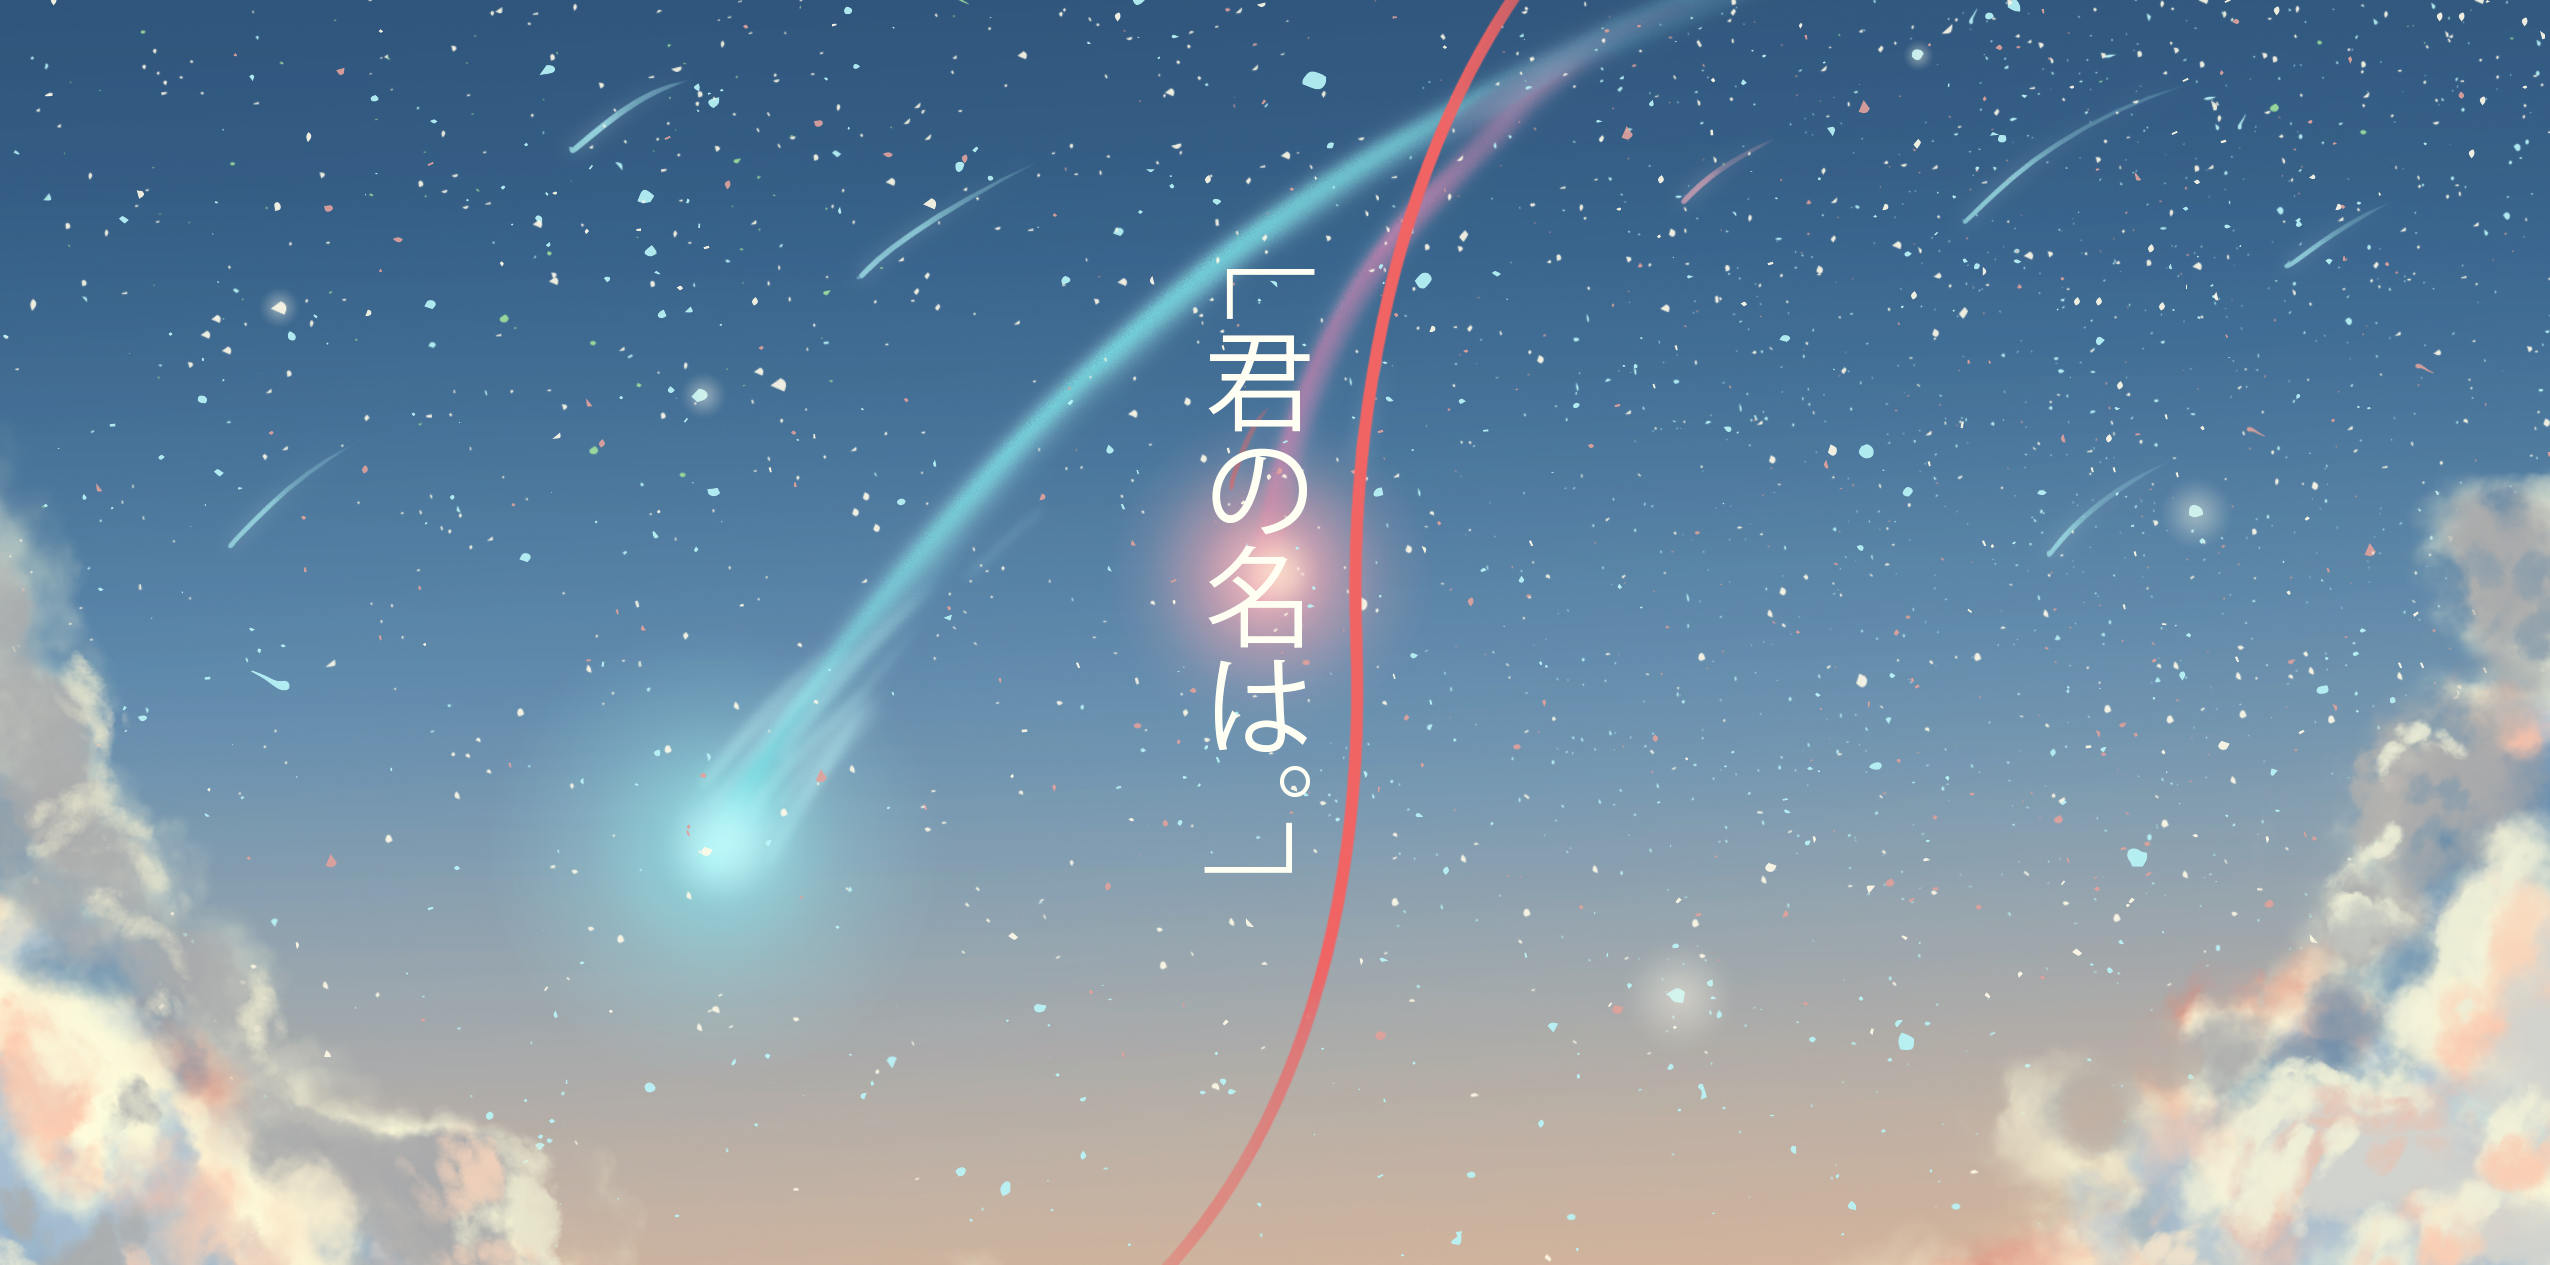 Your Name Aesthetic Desktop Wallpapers Wallpaper Cave